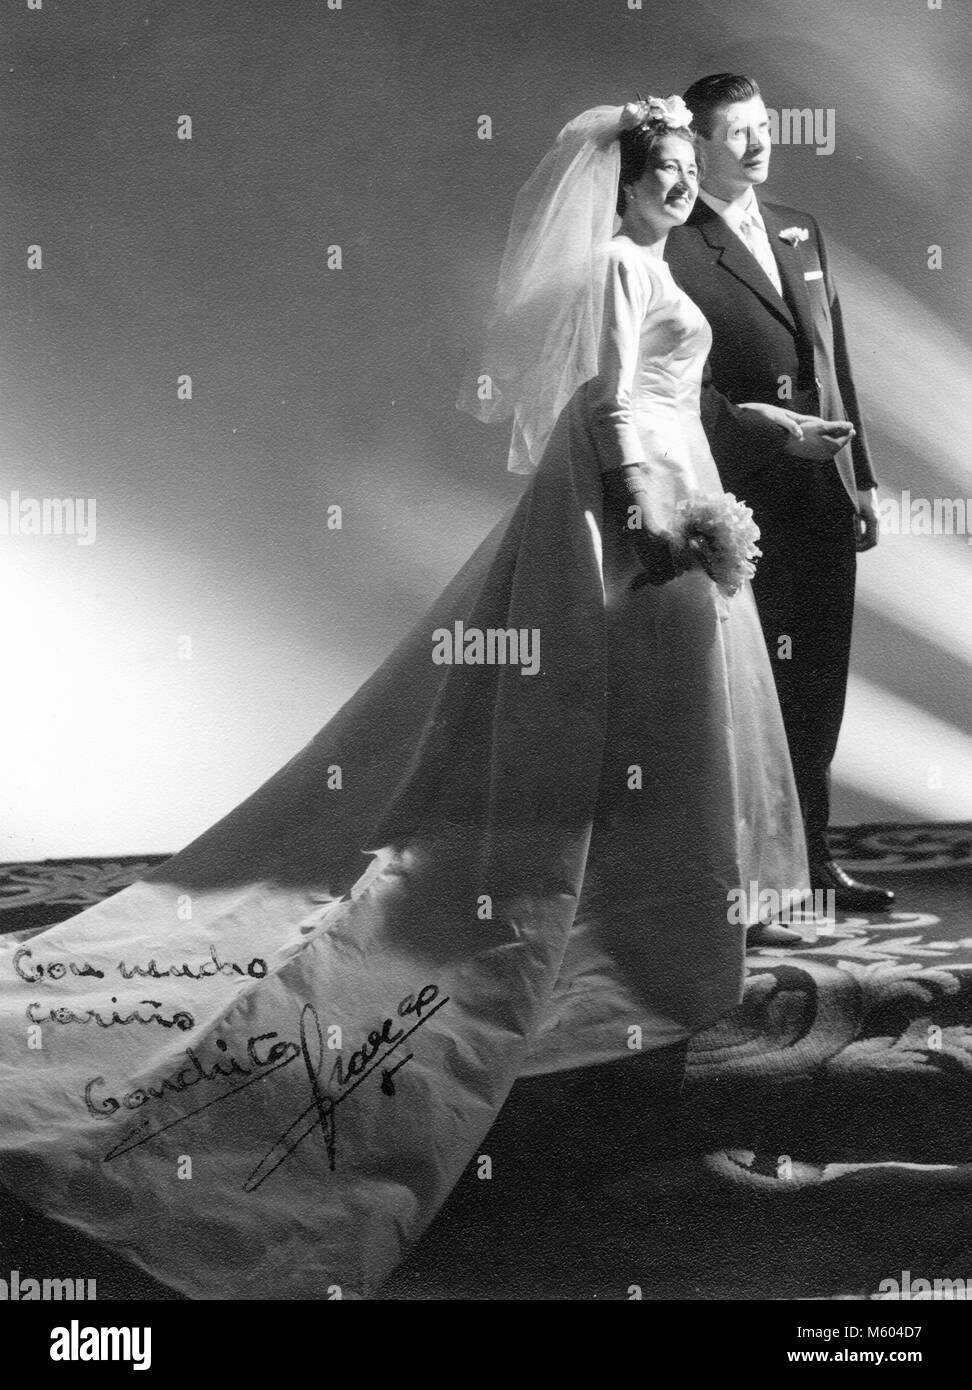 1960s 1970s wedding caucasian couple posing in studio with original pen love message. Black and white shot. Italy - Stock Image